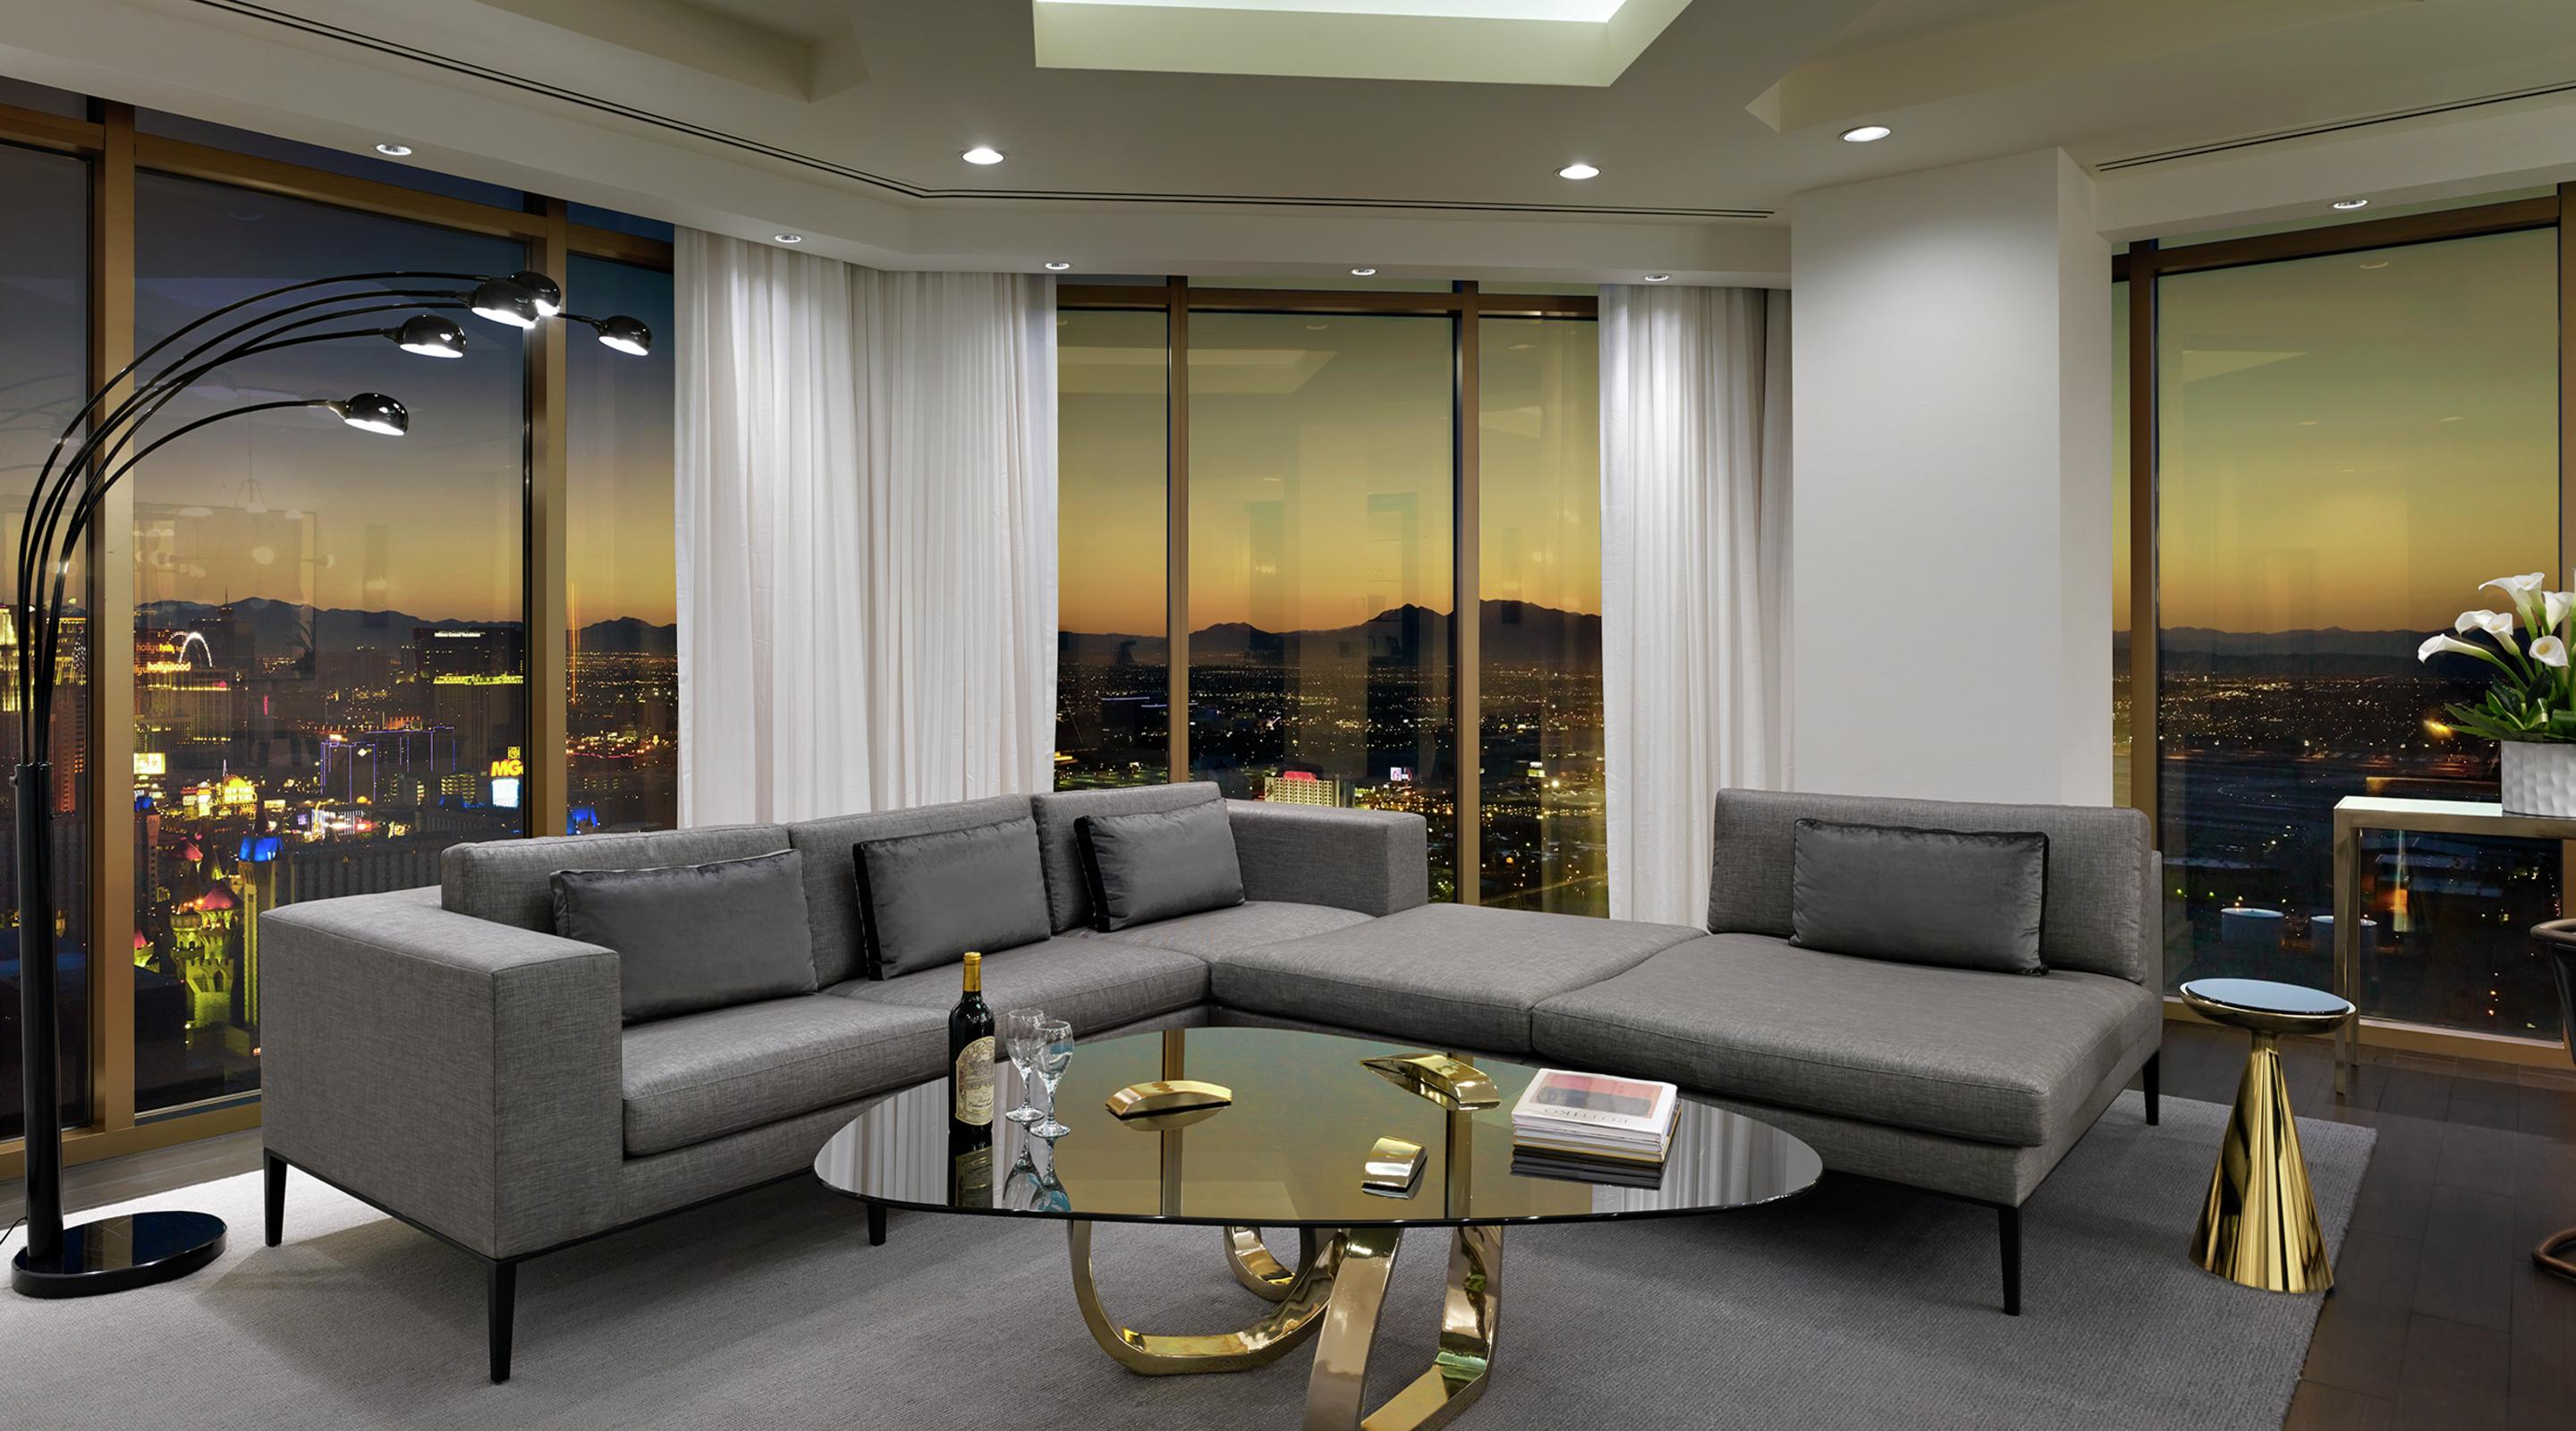 Penthouse superior suite delano las vegas - Cheap 2 bedroom suites in atlanta ga ...